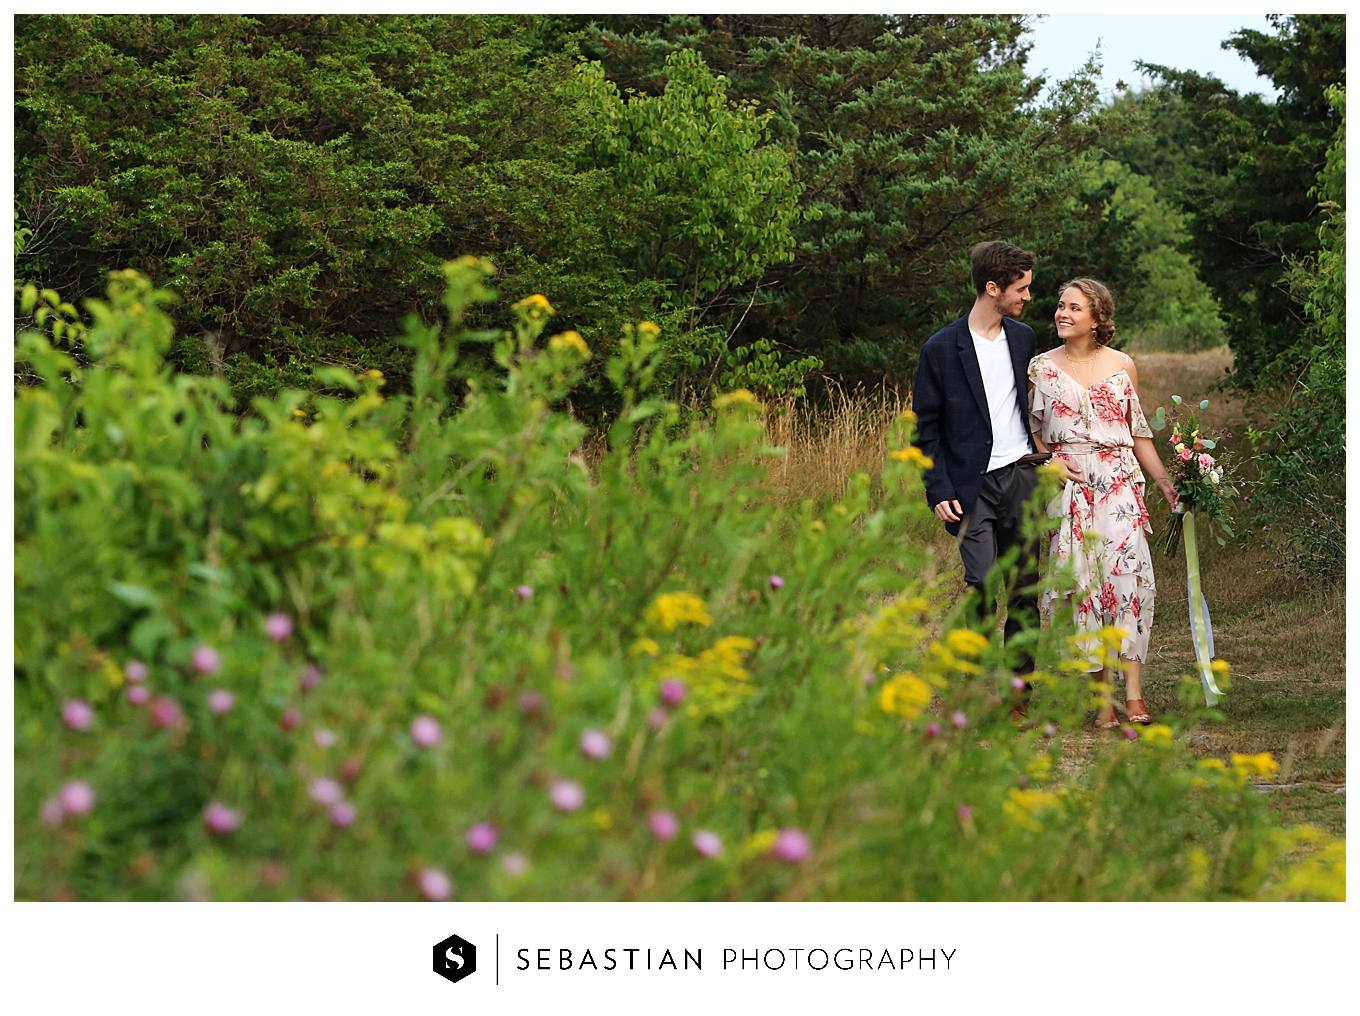 Sebastian Photography_Lake of Isle Wedding_CT Wedding Photogrpaher__1227.jpg